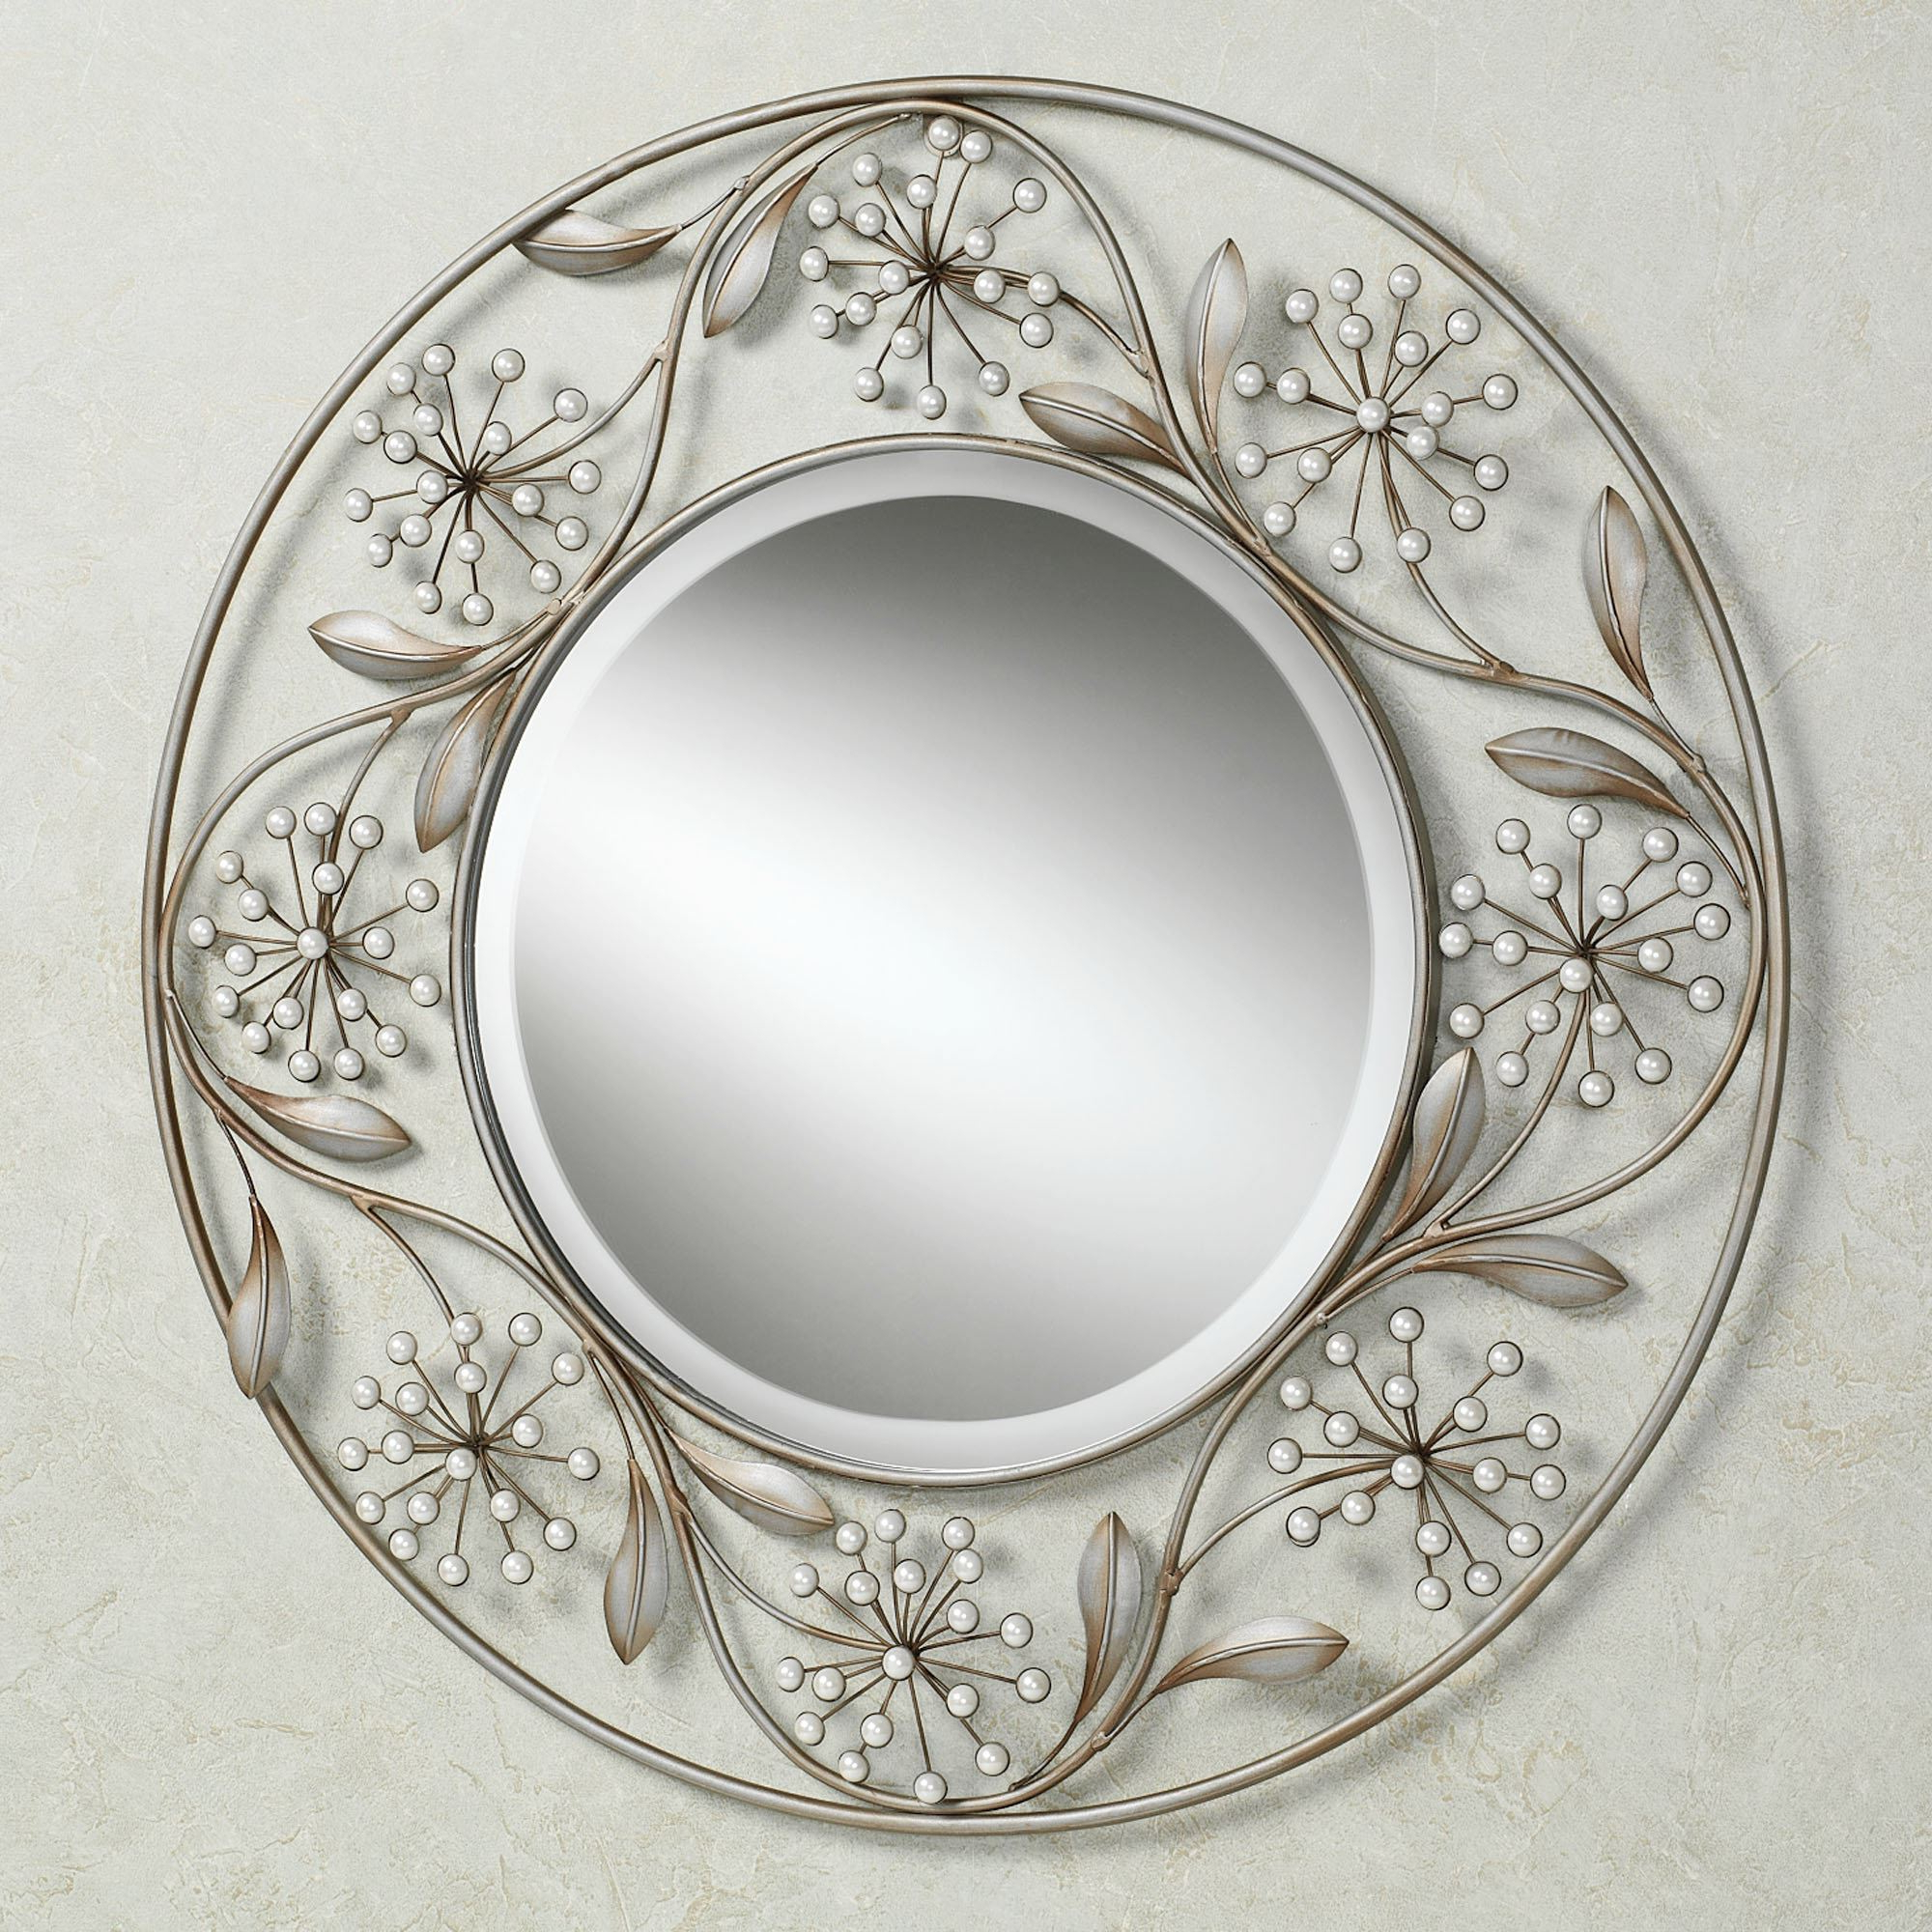 Round Metal Wall Mirrors Throughout Latest Pearlette Round Metal Wall Mirror (Gallery 5 of 20)